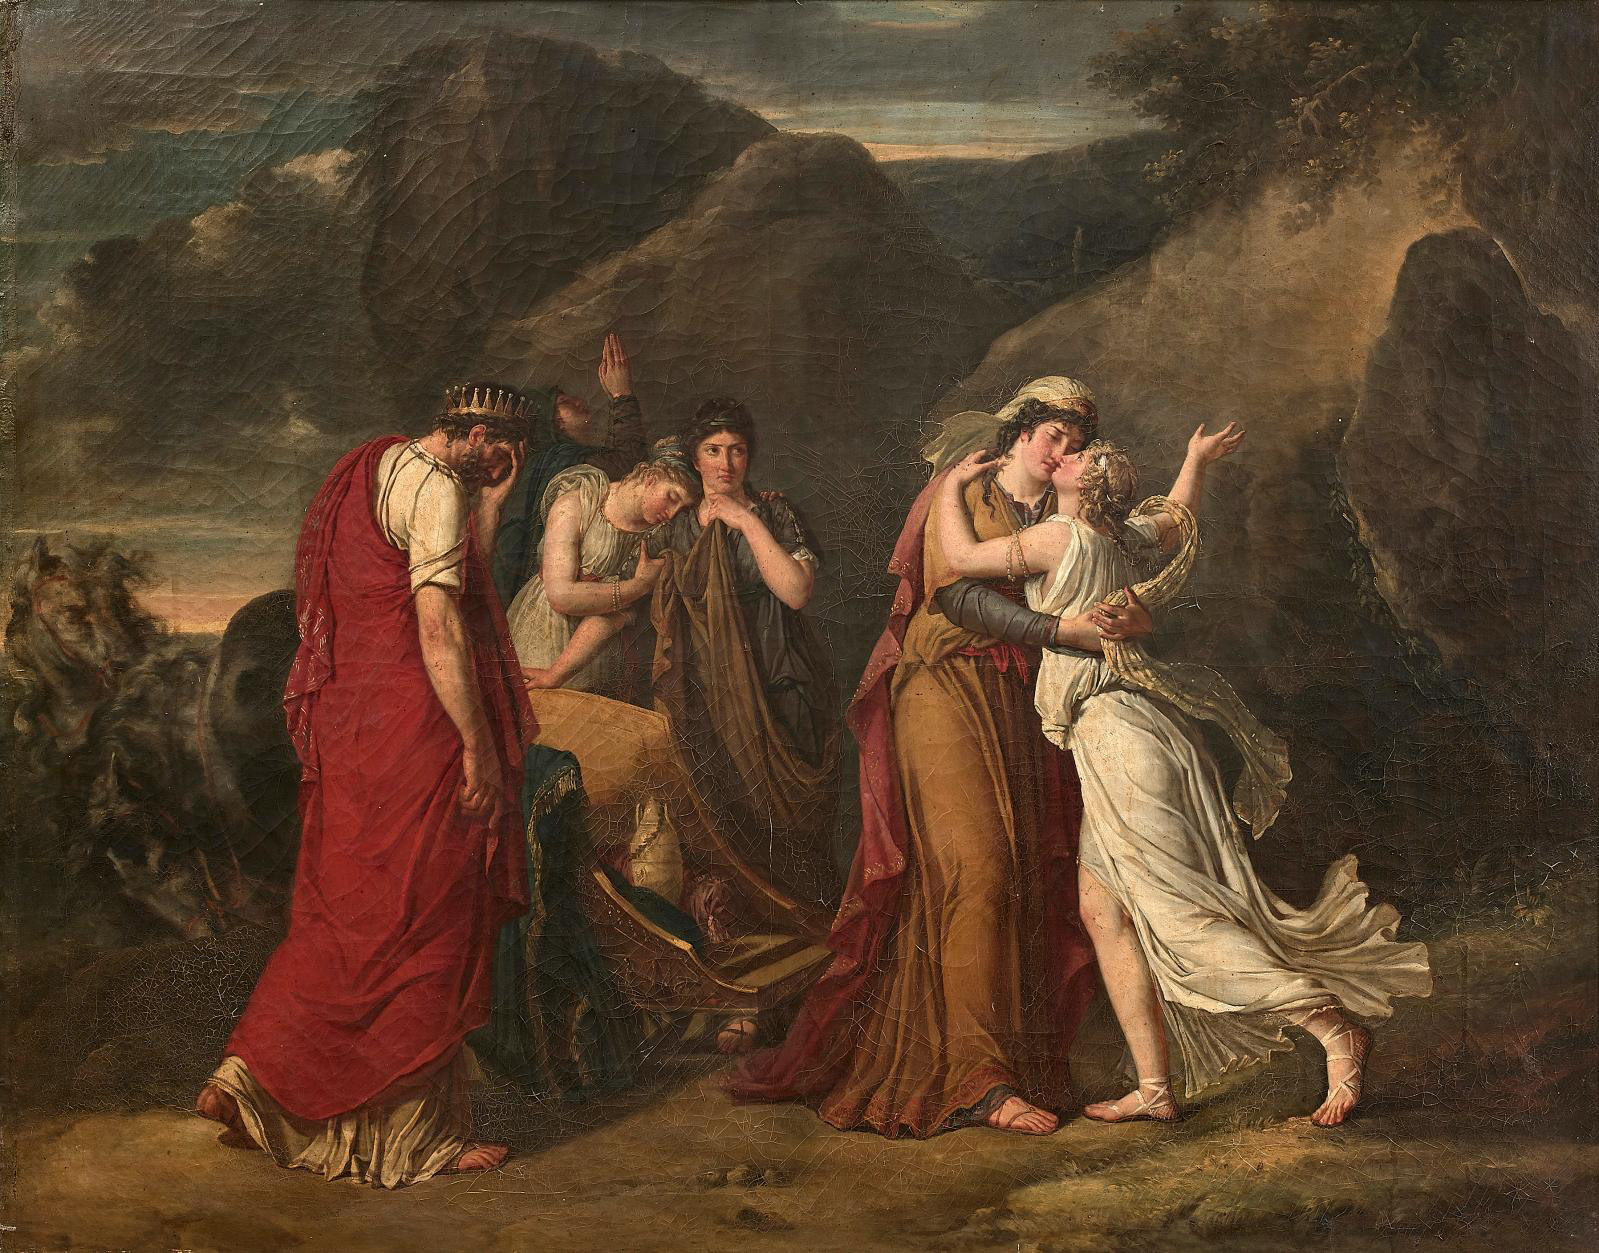 Marie-Guillemine Benoist (1728-1826), Psyche bids farewell to her family, 1791, oil on canvas, 111 x 145 cm (43.7 x 57 in).Online, July 4,